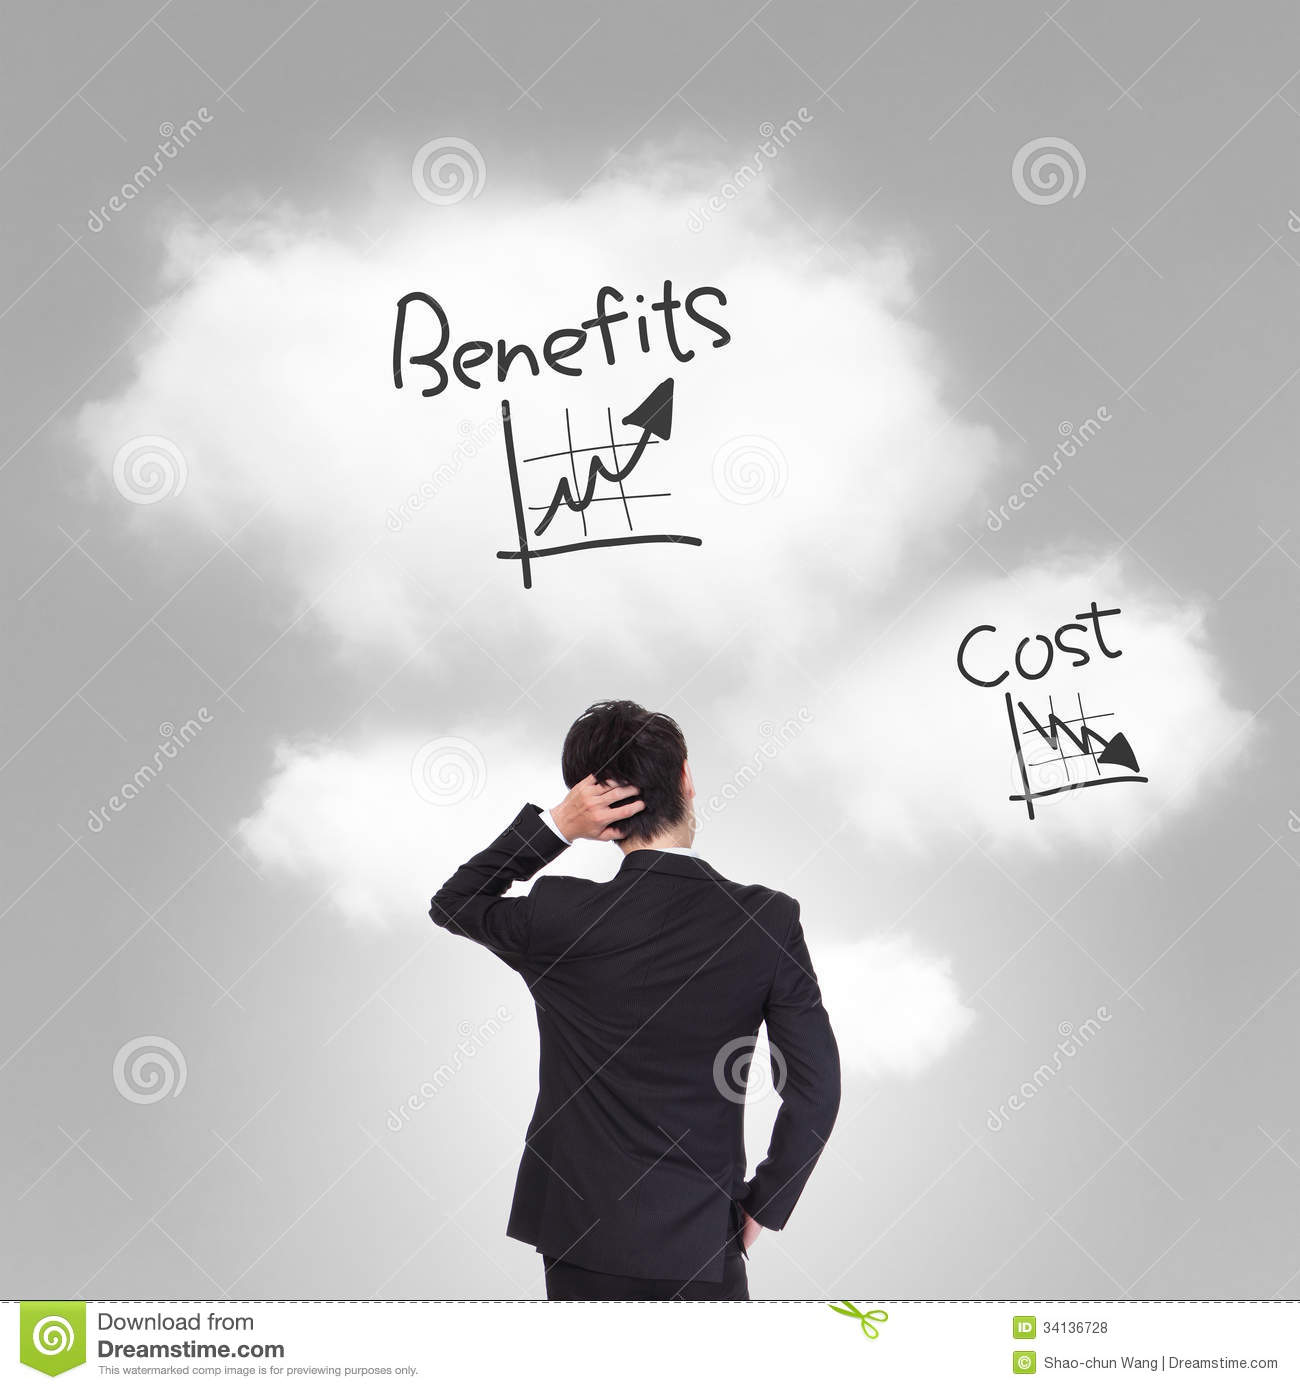 Person Pricing: Cost And Benefits Problem Stock Photo. Image Of Increase